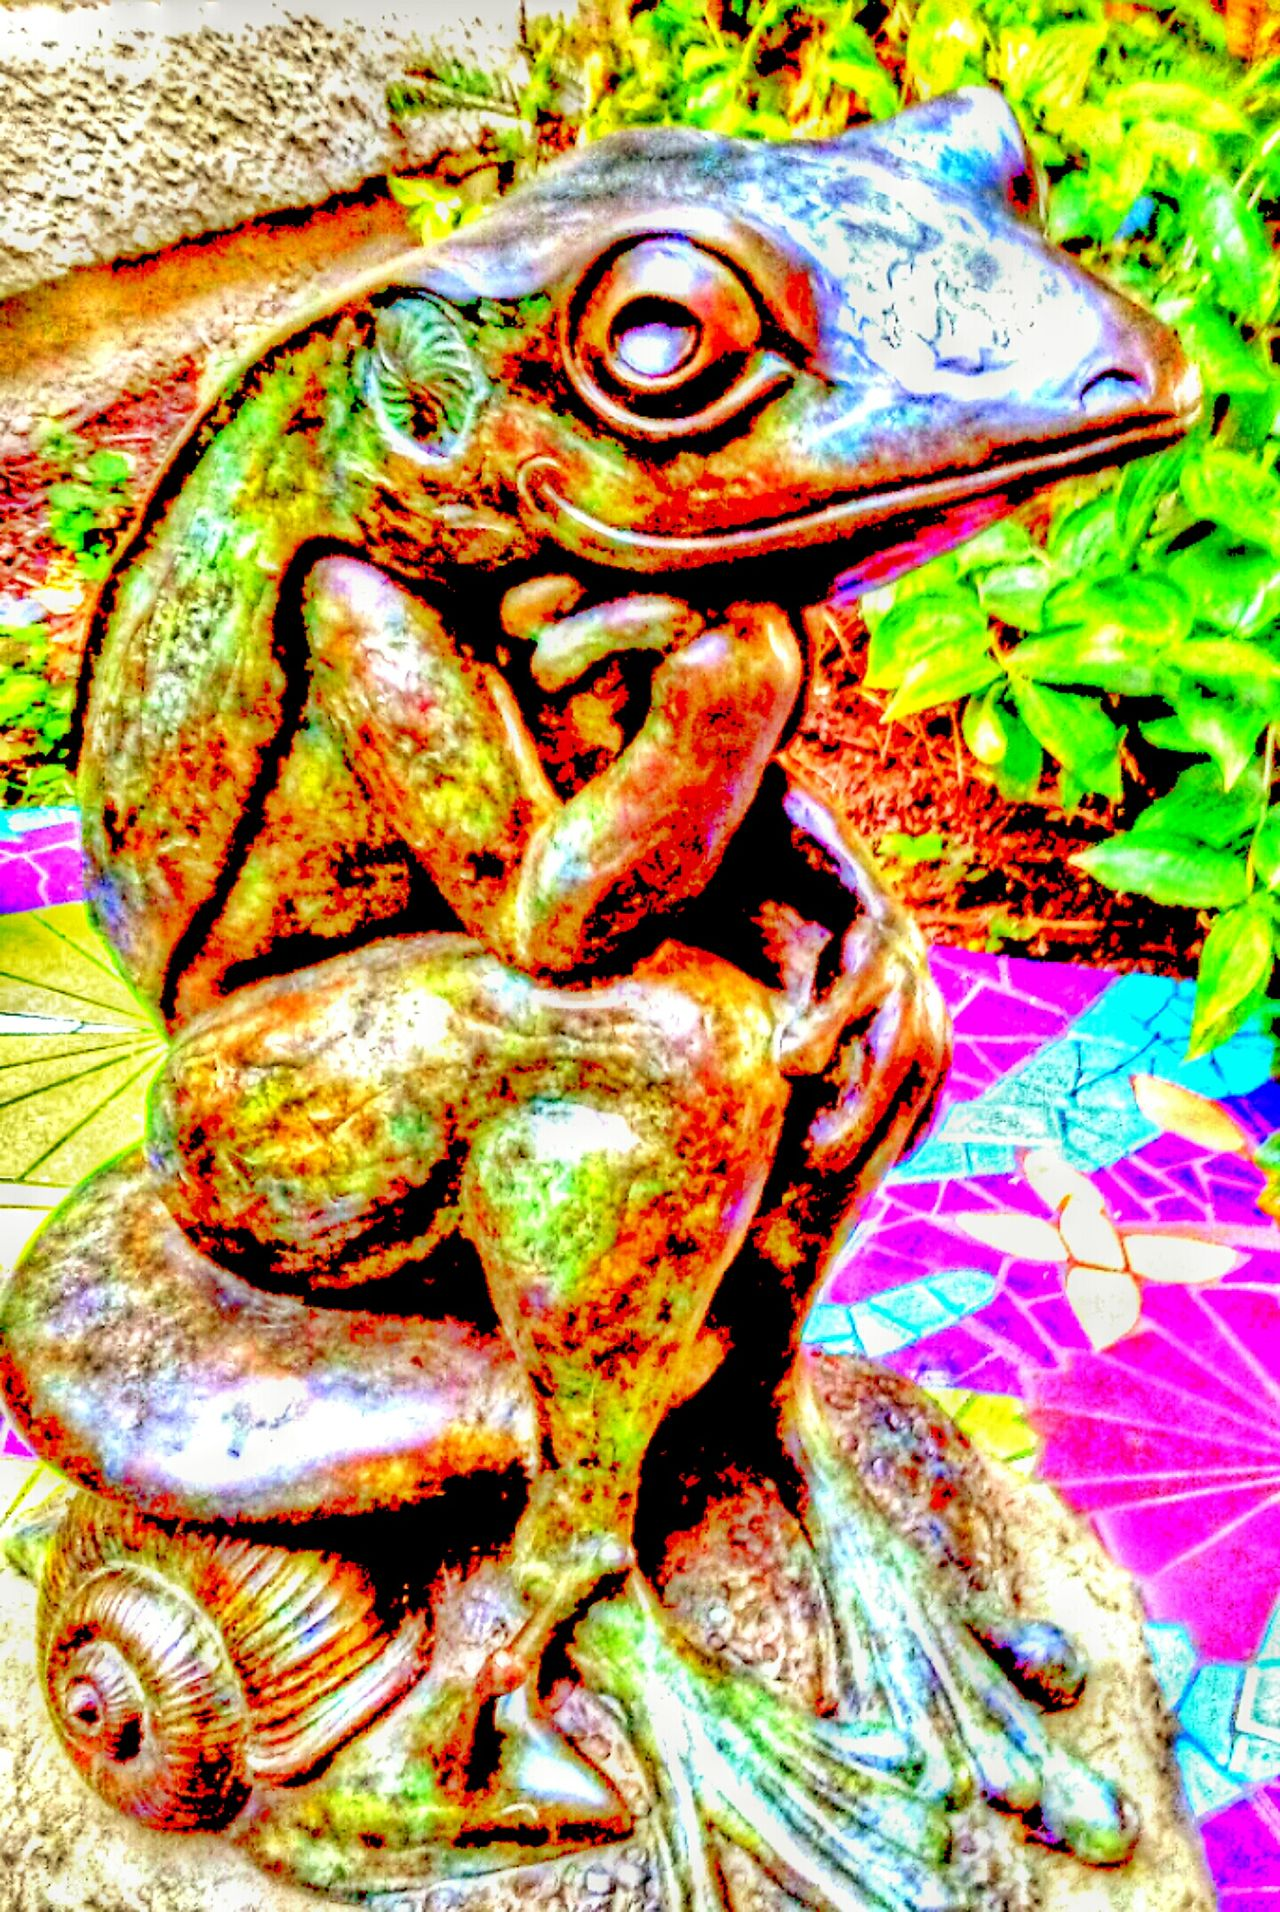 The Thinker The Thinking Man Have A Seat Thinking About Life Thinking About You I Think I Like EyeEM  Hes Thinking Frogs Think Too Thinking Frogs Lost In Thought... Lost In My Thoughts What Do You Think? I Think You Should ❤this Photo! Colour Of Life Whats On The Roll Color Palette